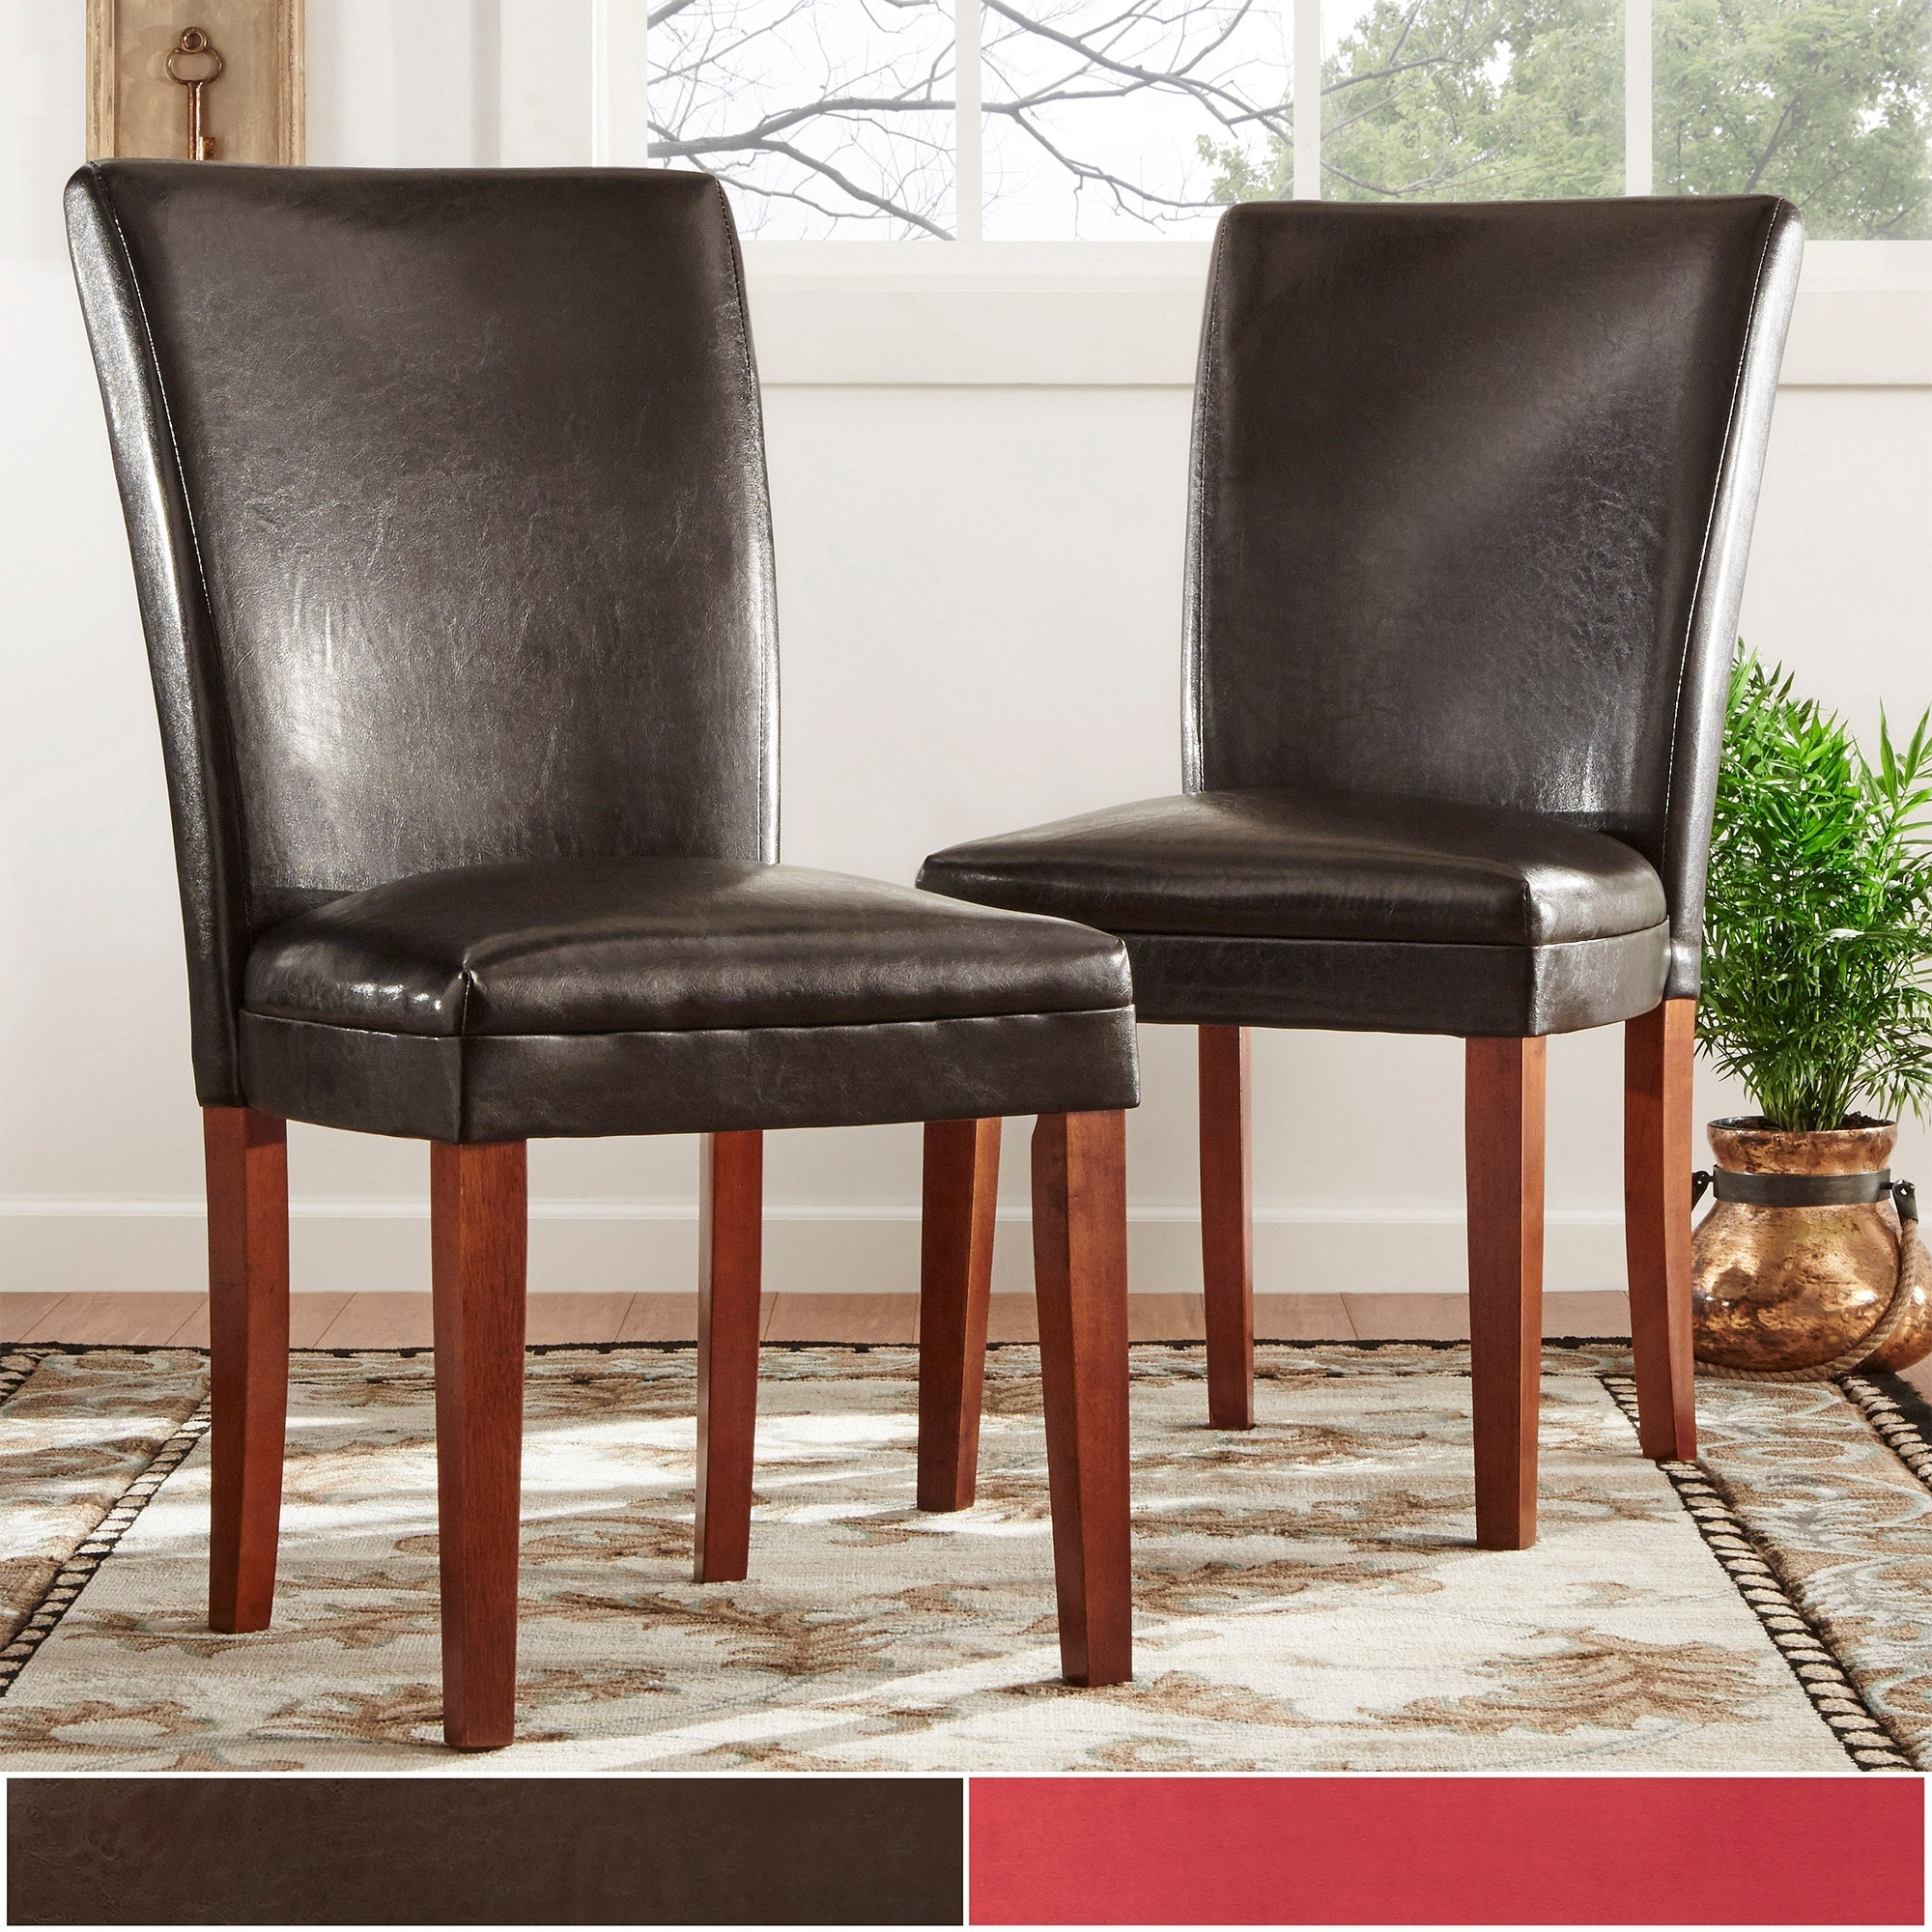 Parson Faux Leather Dining Chairs (Set of 2) by iNSPIRE Q...